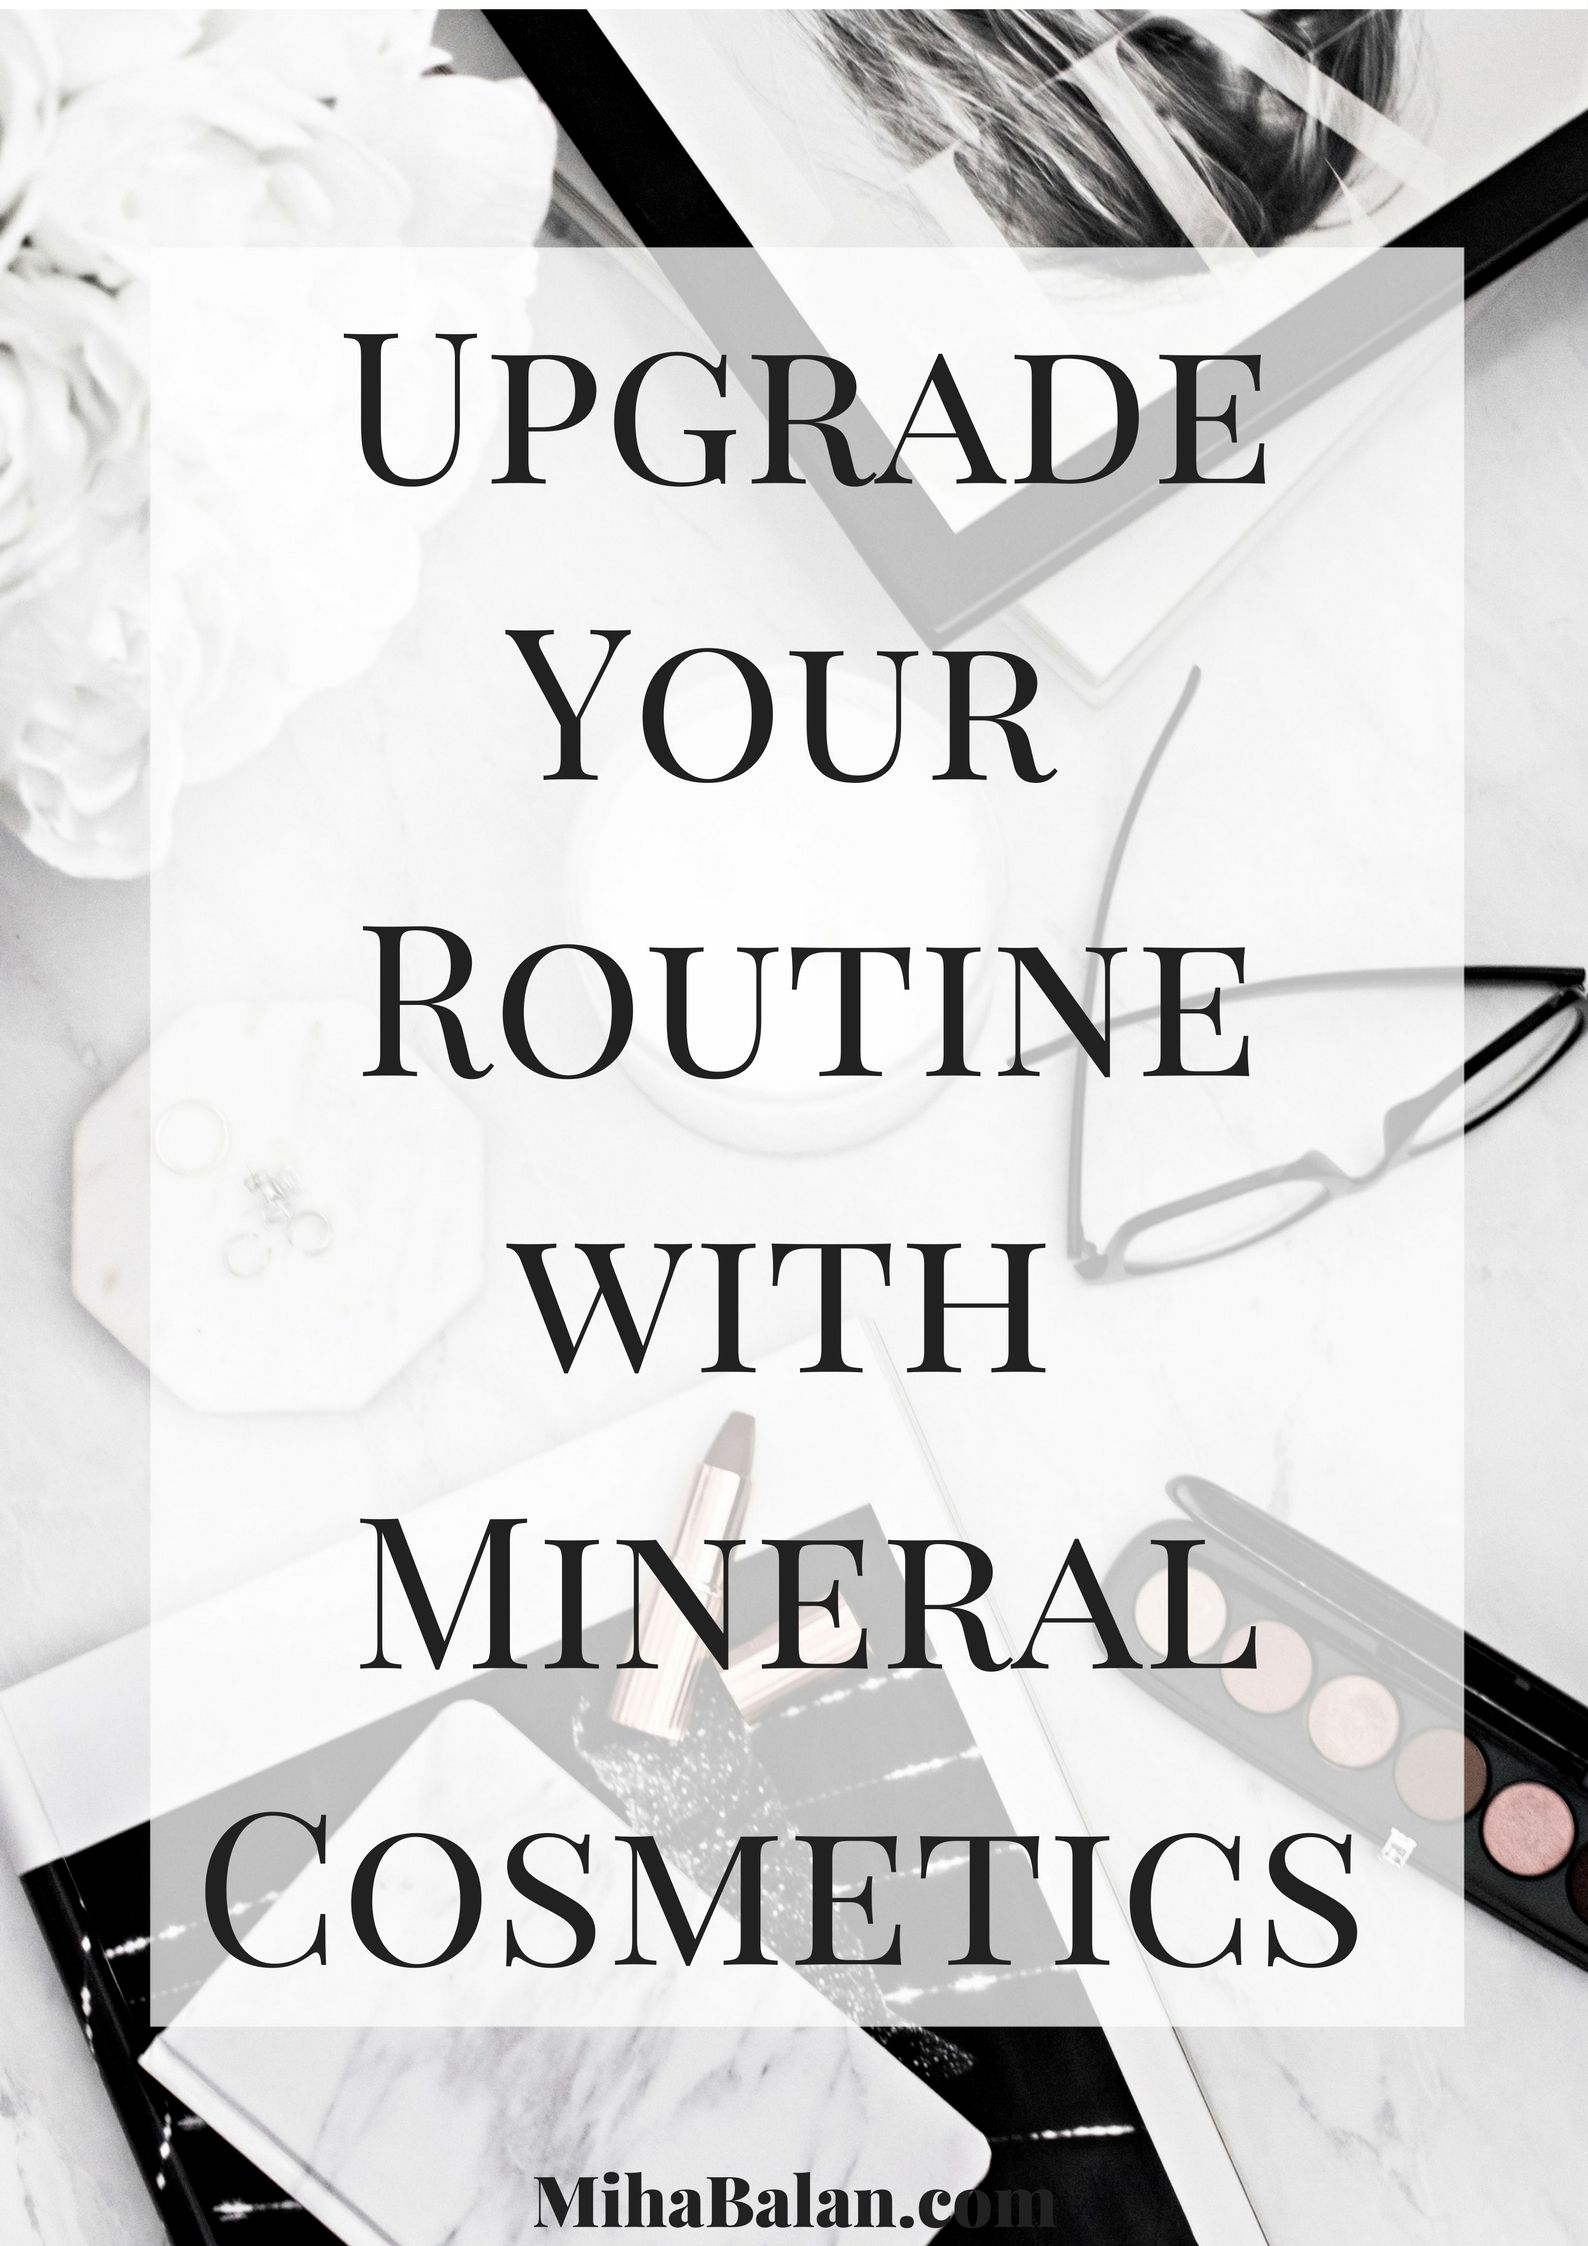 Upgrade Your Routine with Mineral Cosmetics - Be you, very well